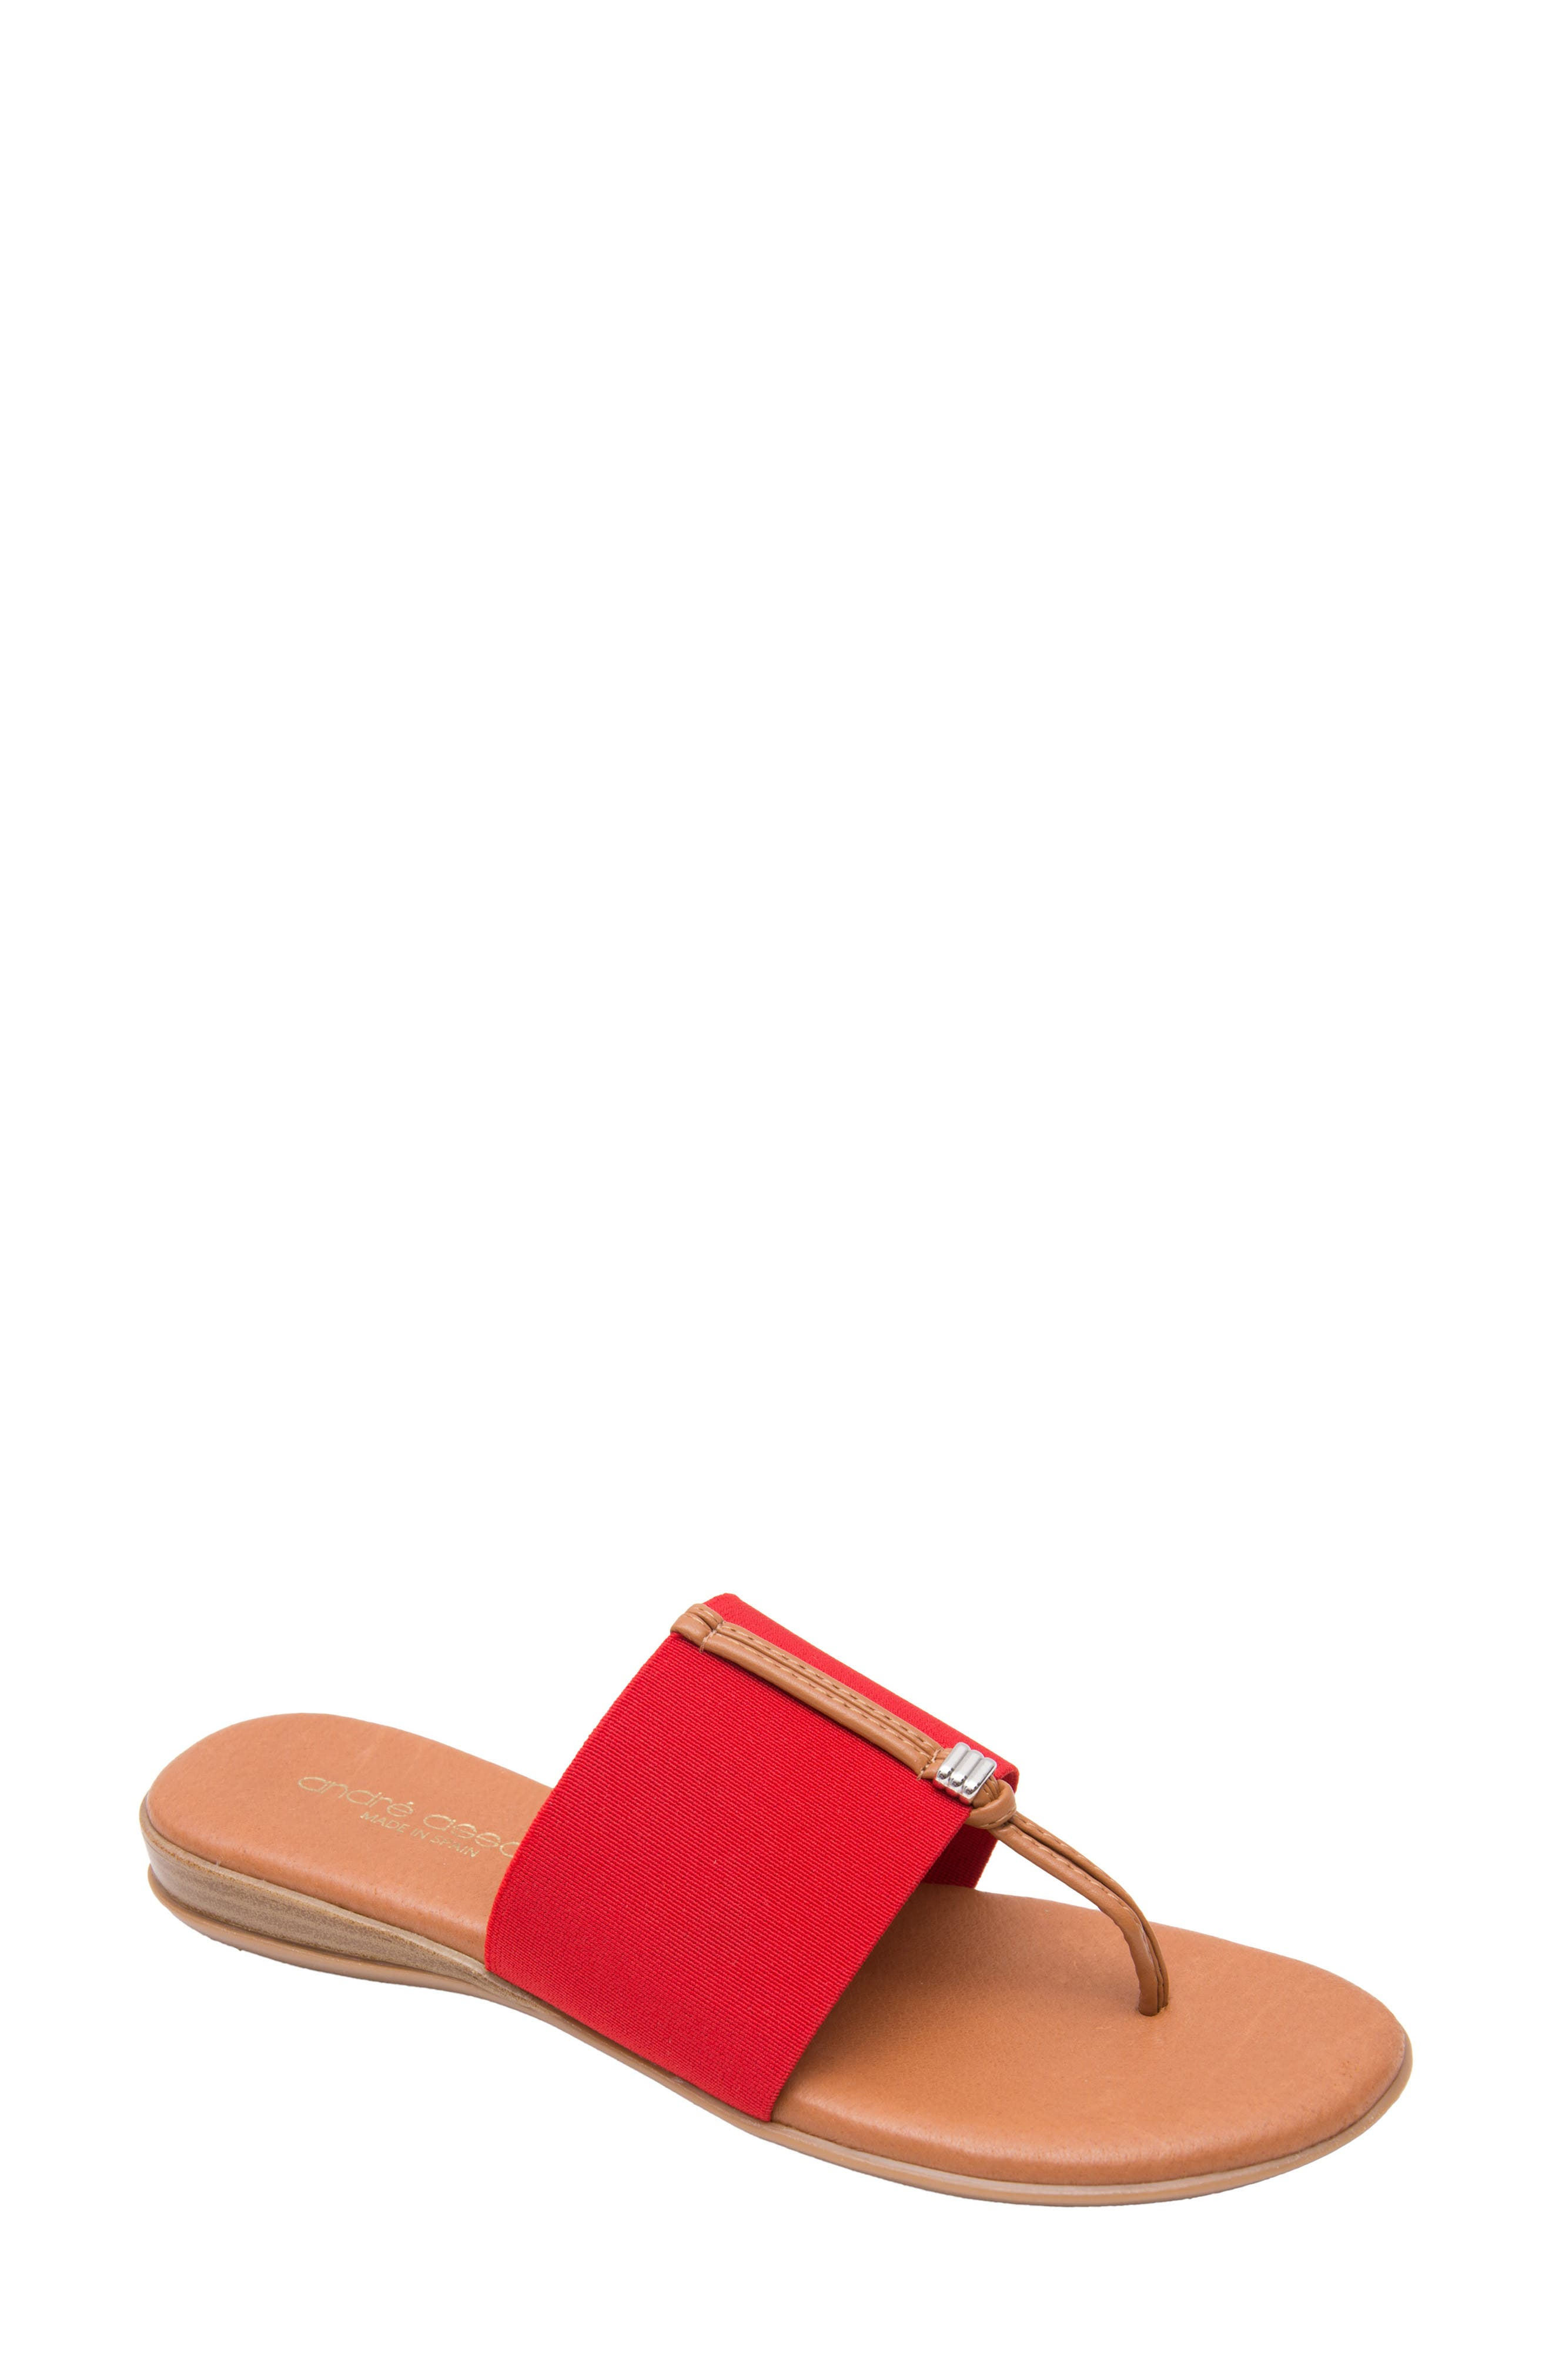 ANDRE ASSOUS Nice Sandal in Red